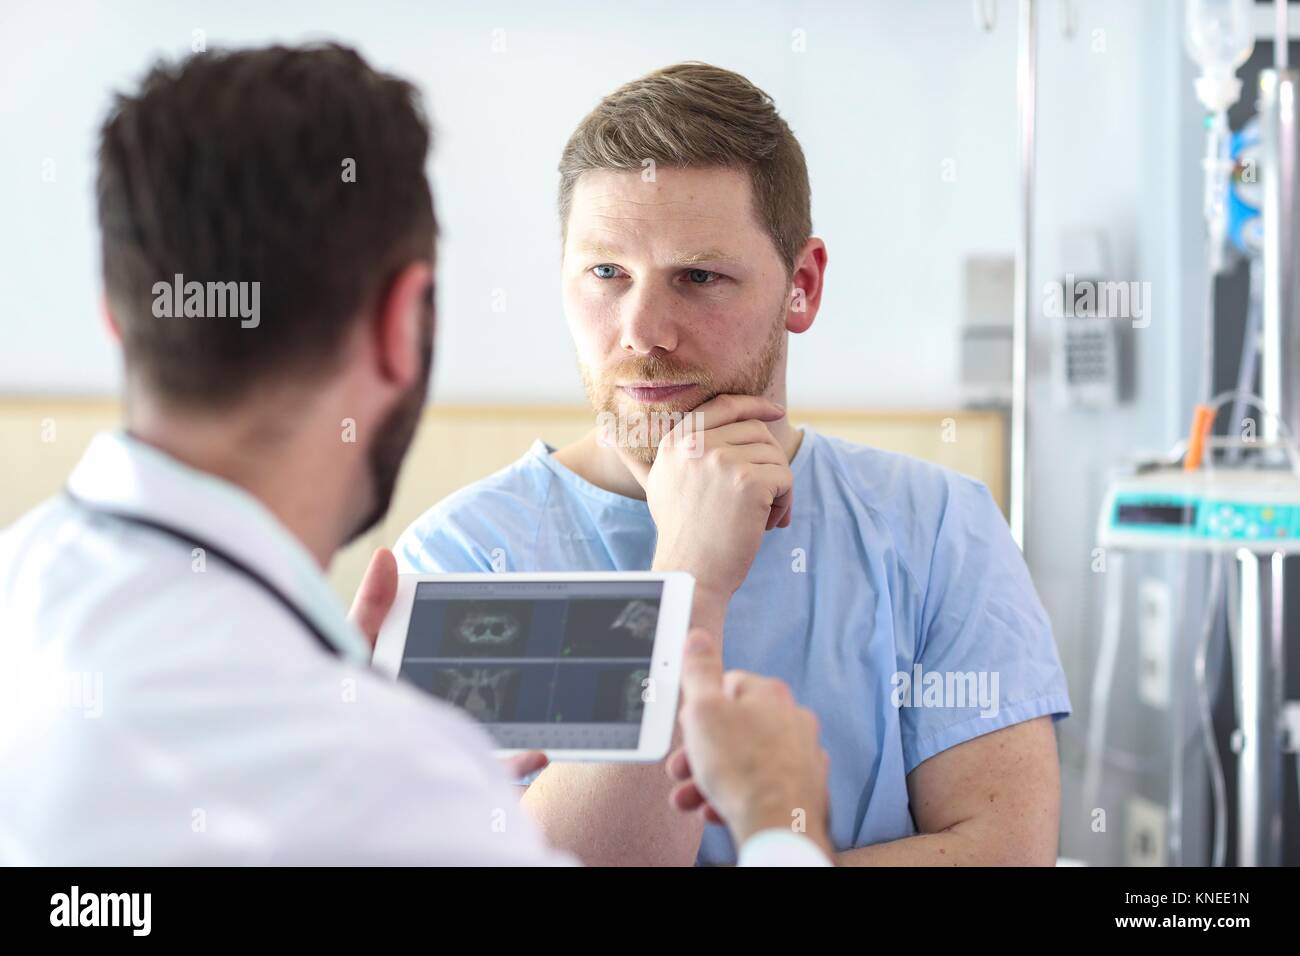 Patient in hospital room attended by a doctor, Tablet, Hospital - Stock Image